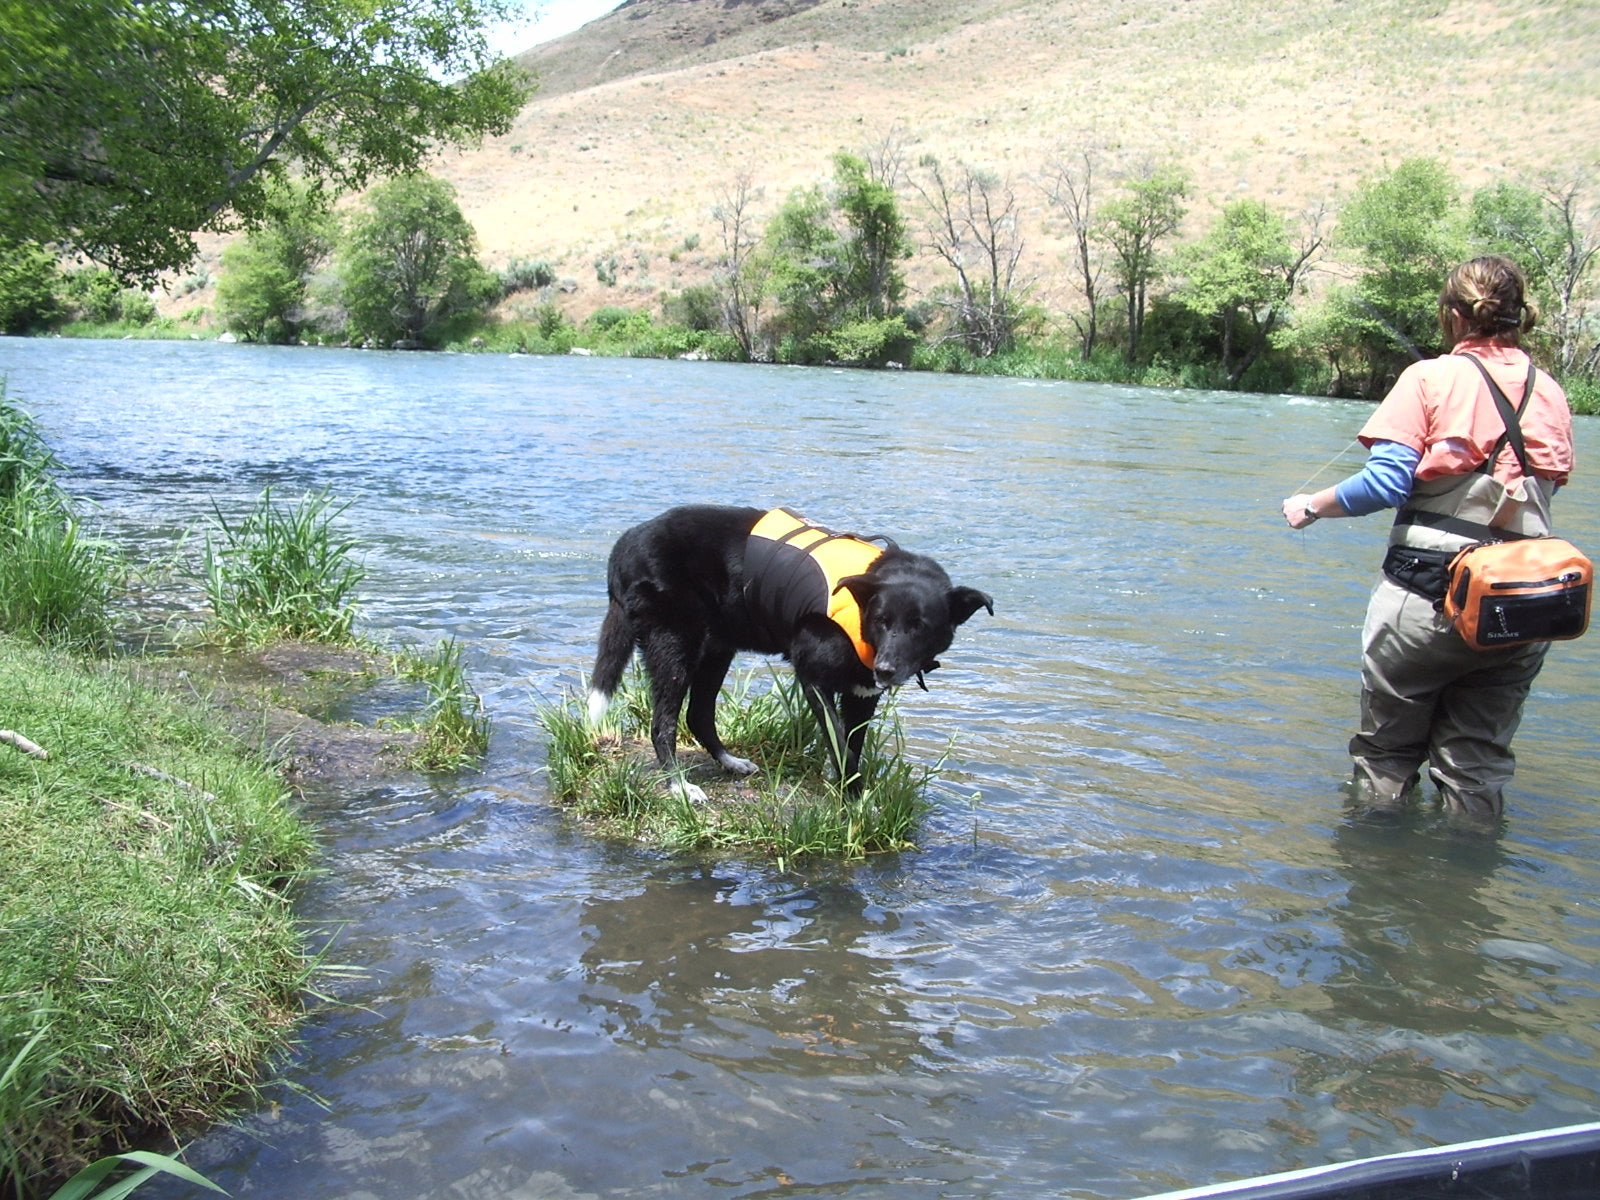 Dove and her dog Sierra fishing in a river